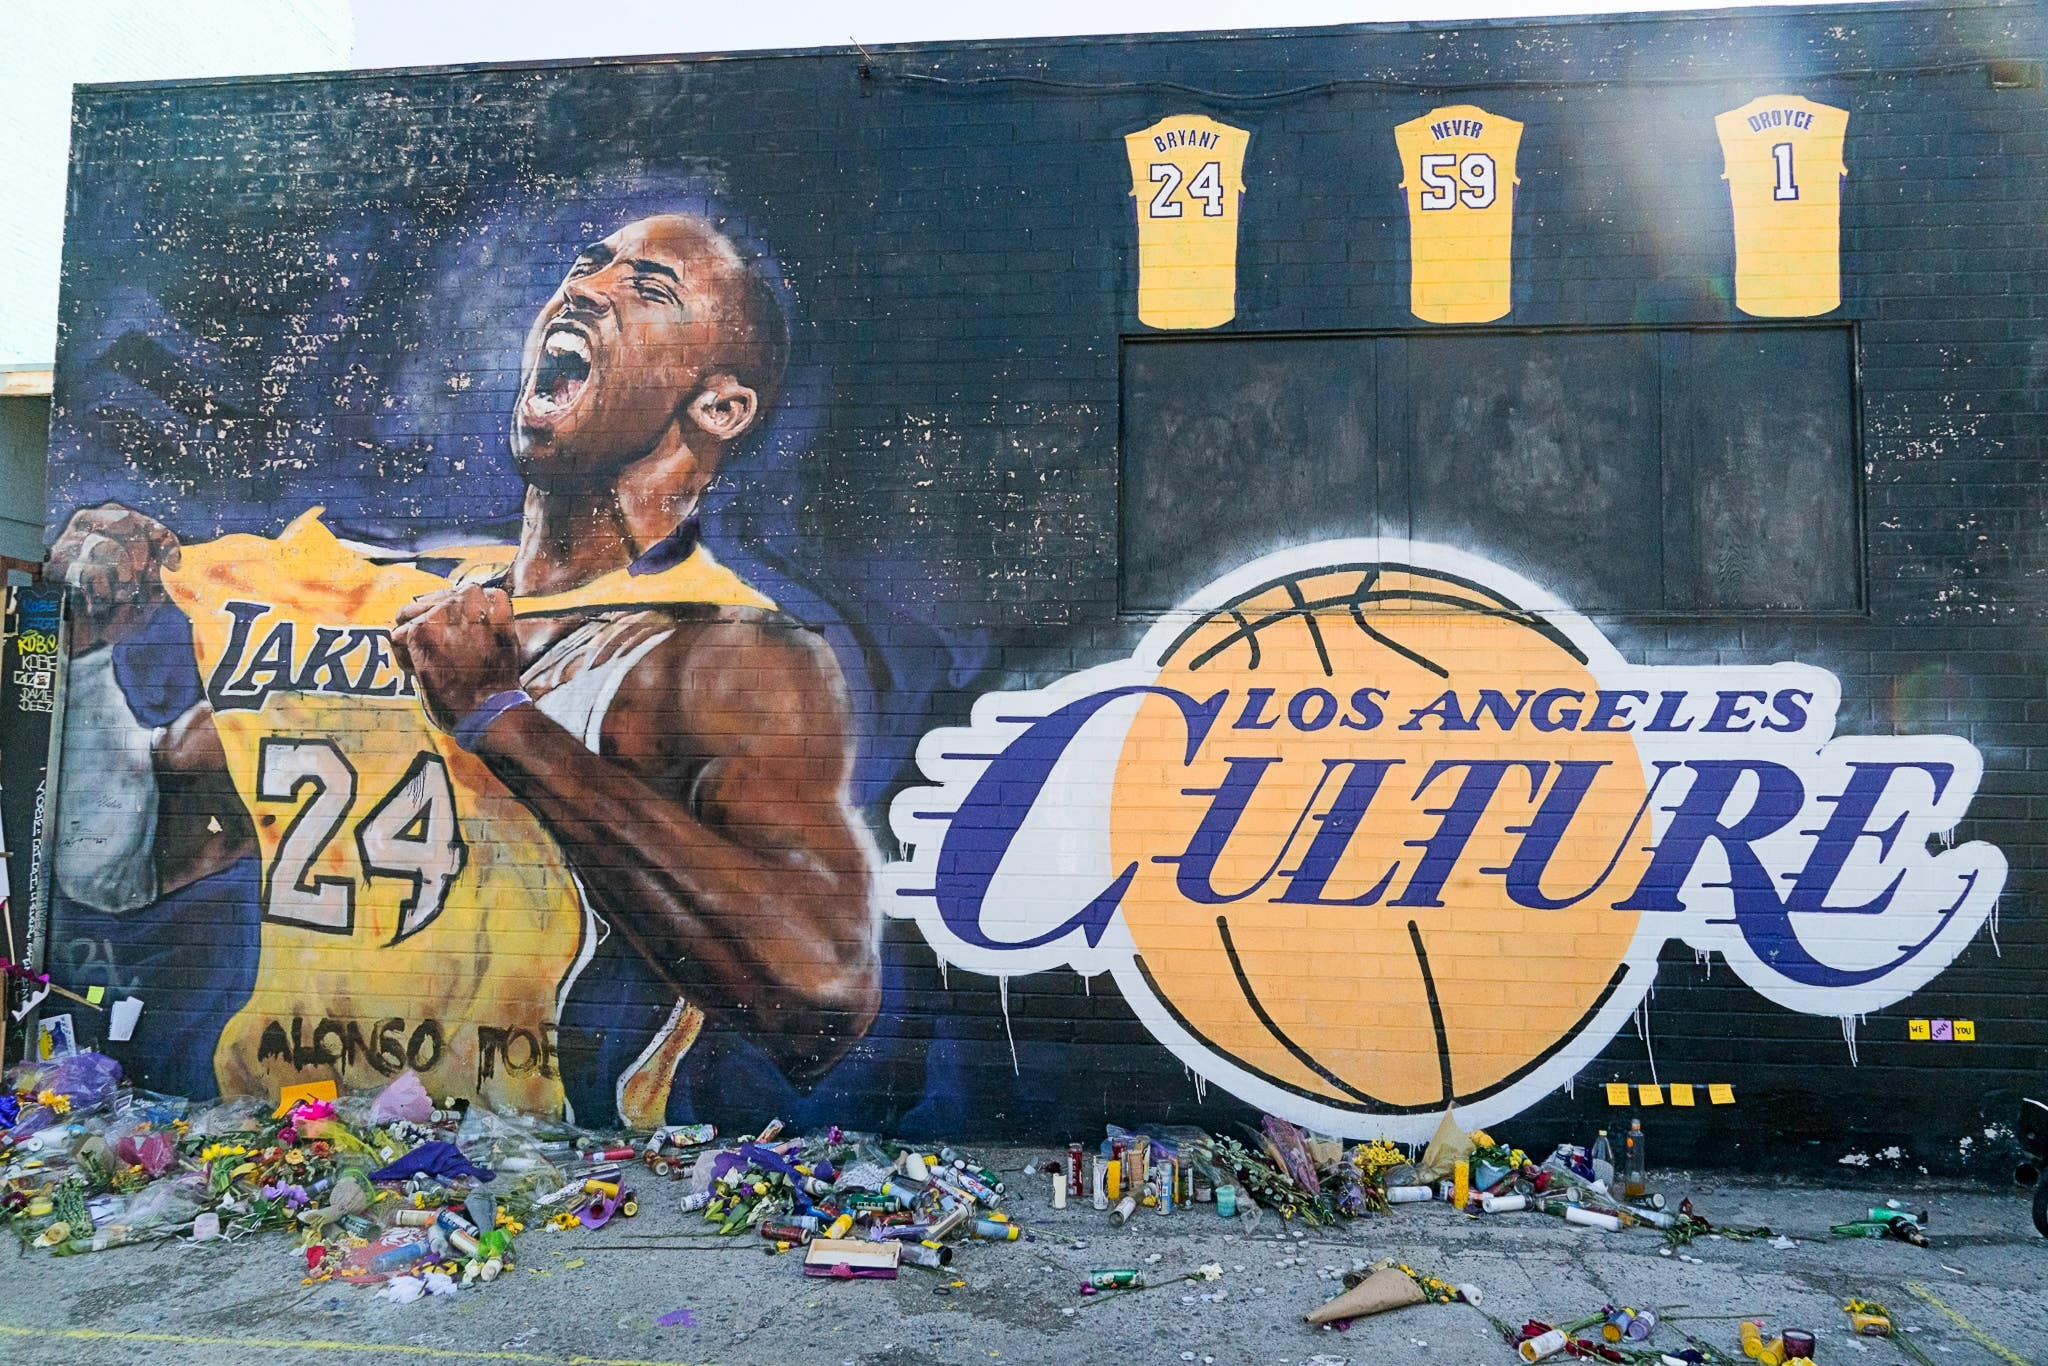 Kobe Bryant mural by Jonas Never on Lebanon Street in Downtown LA